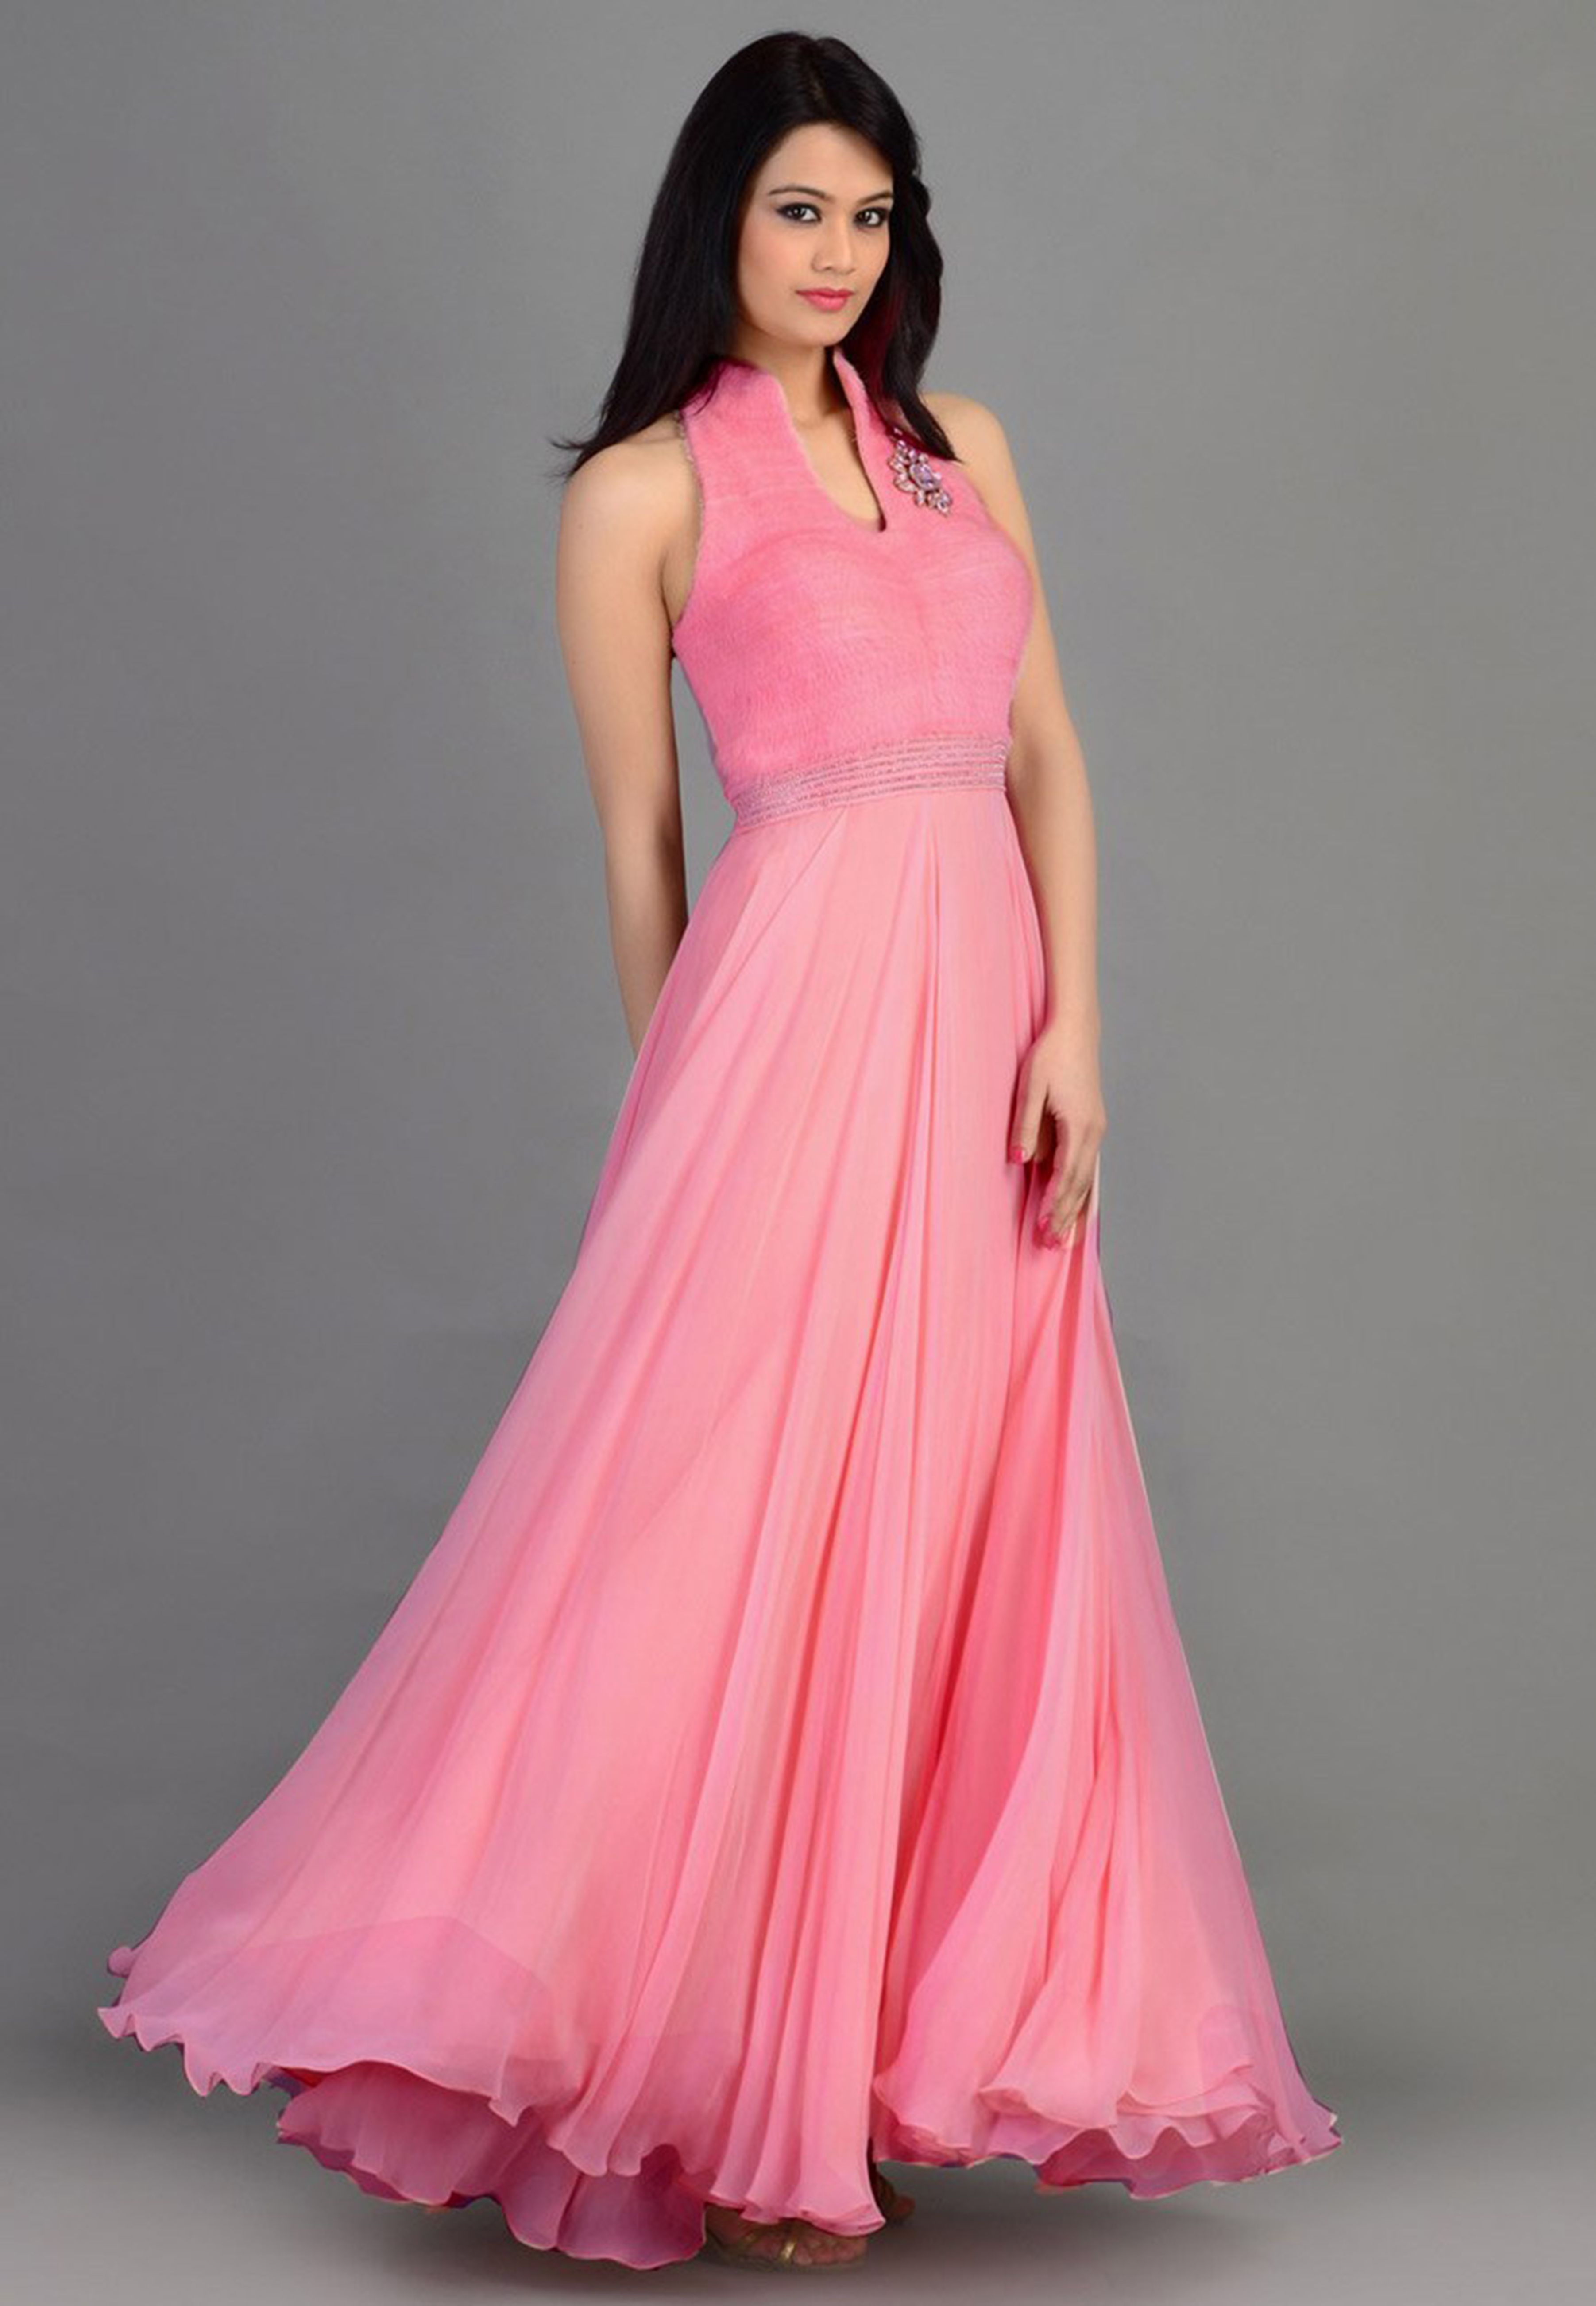 5f5a3d1827 Pink gown, Craftsvilla.com, World Ethnic Day shop through www.bpicker.com